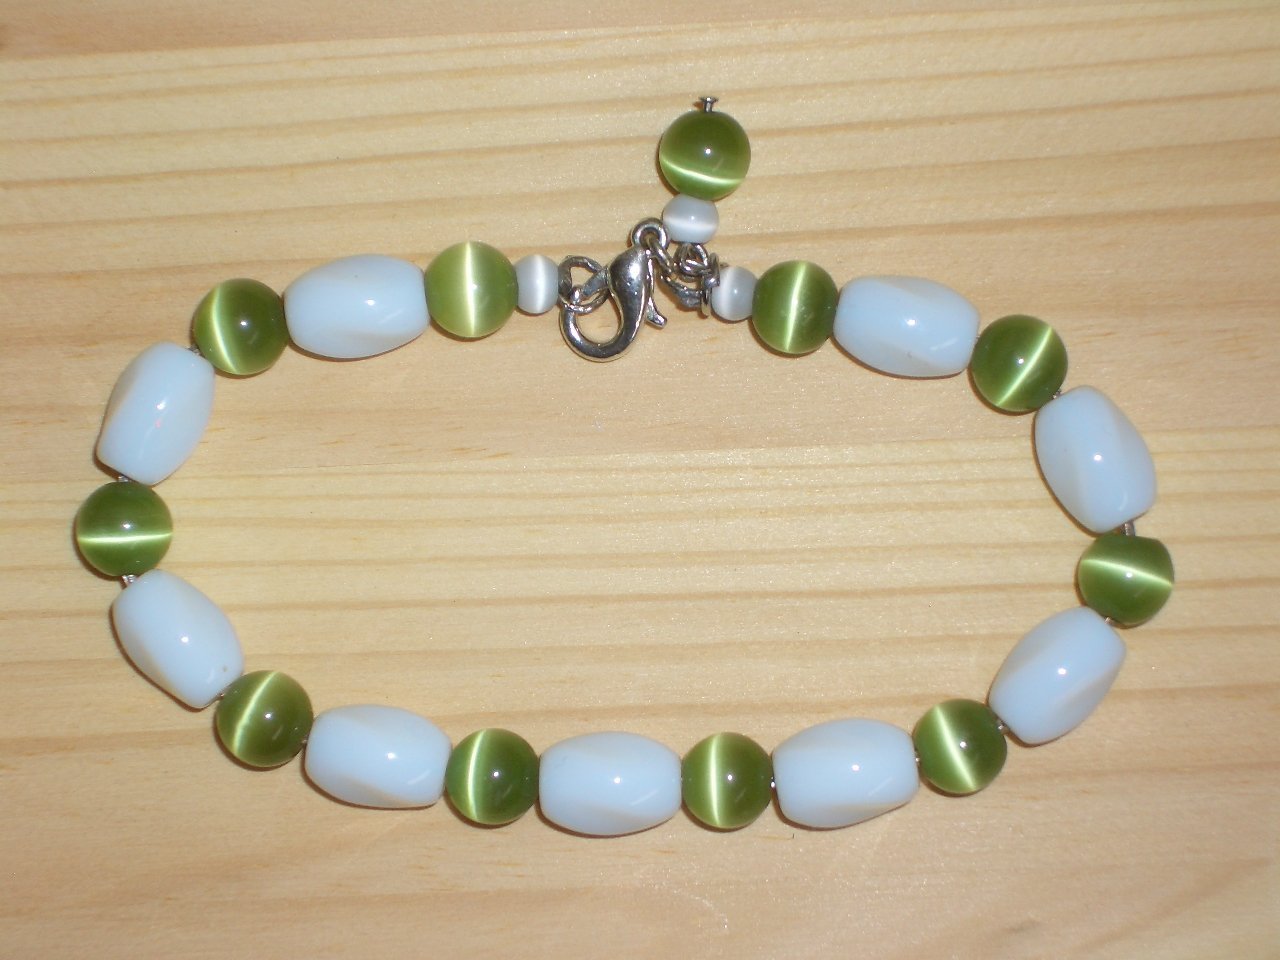 Charming Cute Bracelet White Oblong Green Round Glass Beads Trendy Mod Funky Chic Fashion Accessory